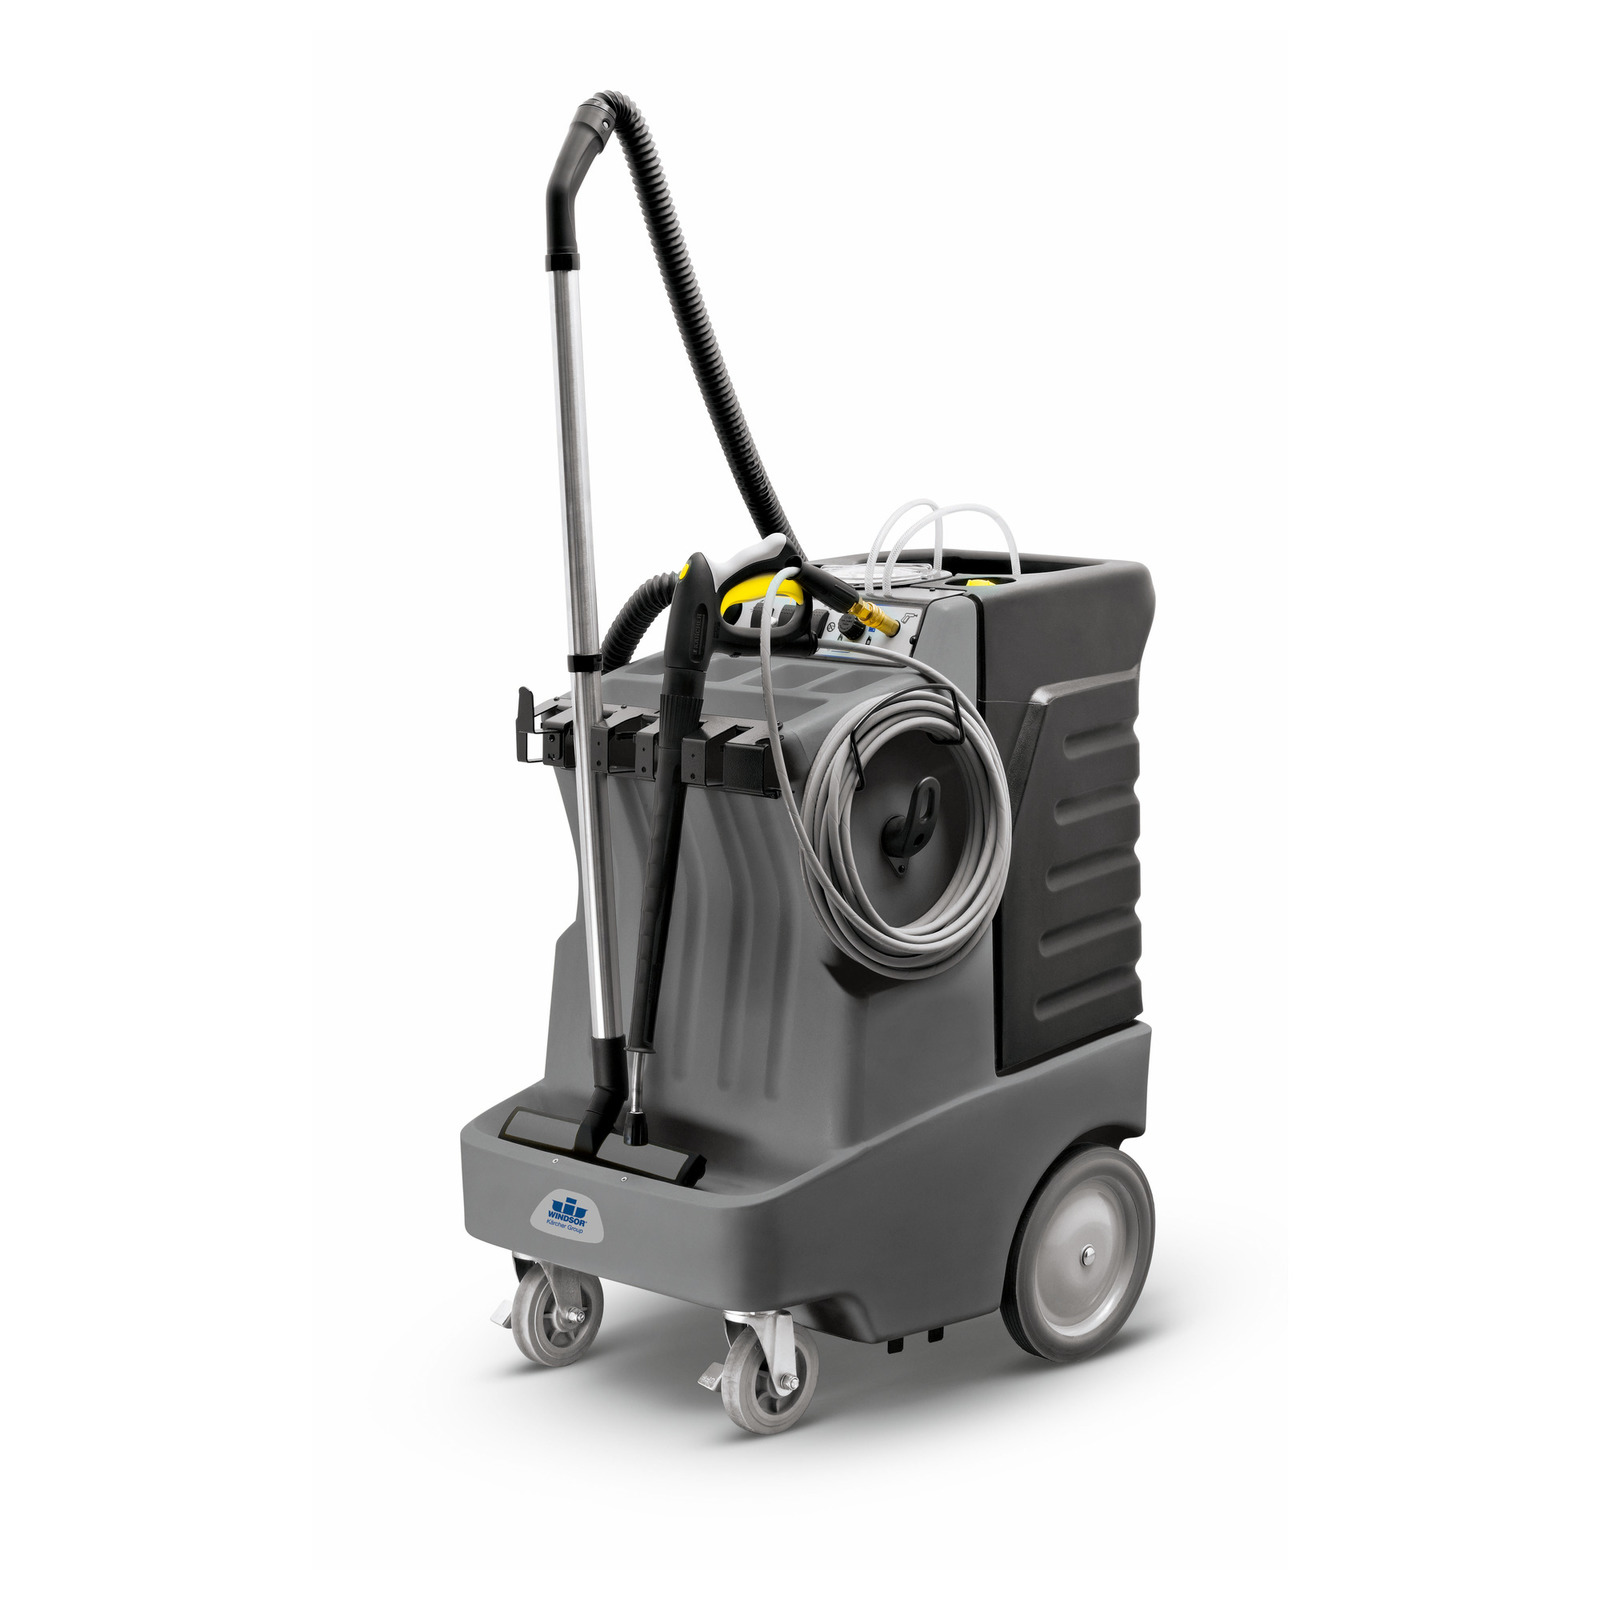 Karcher AP 100/50 M-CA Windsor Compass 2 Touchless Bathroom Cleaning Machine 1.007-080.0 AKA 1.007-056.0 Freight Included